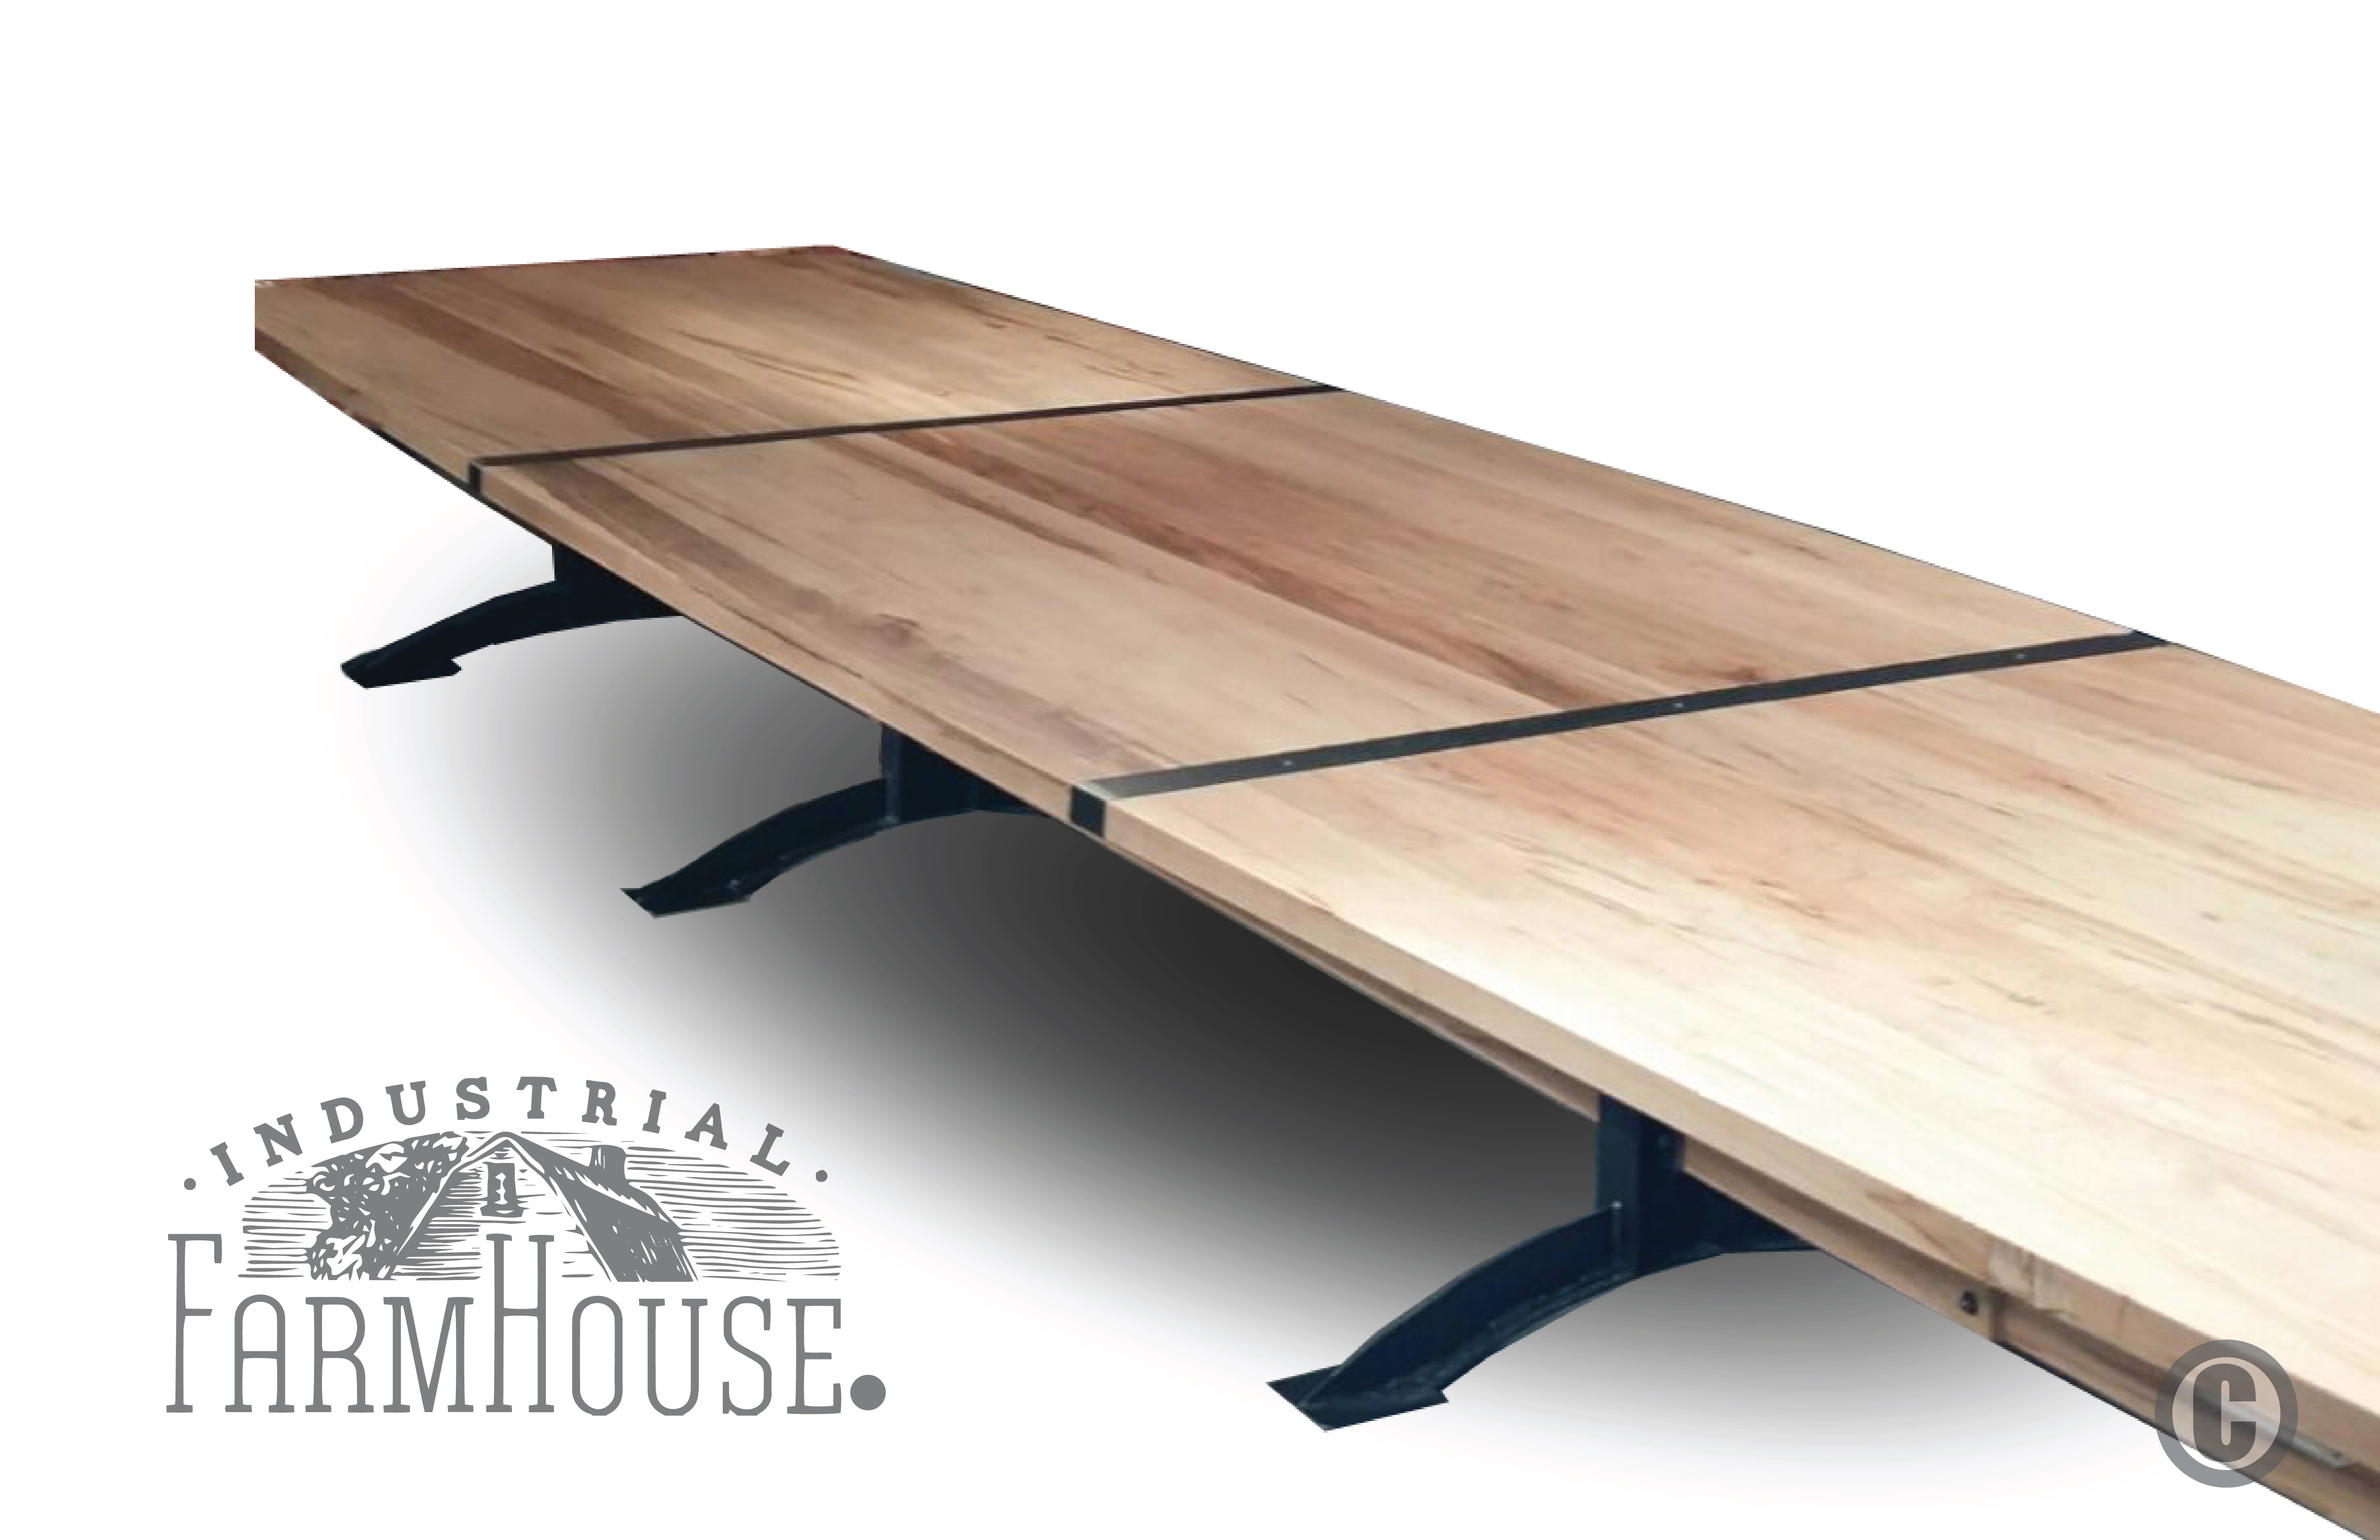 Rustic Minimalist 20 Table With Pratt Base The Industrial Farmhouse